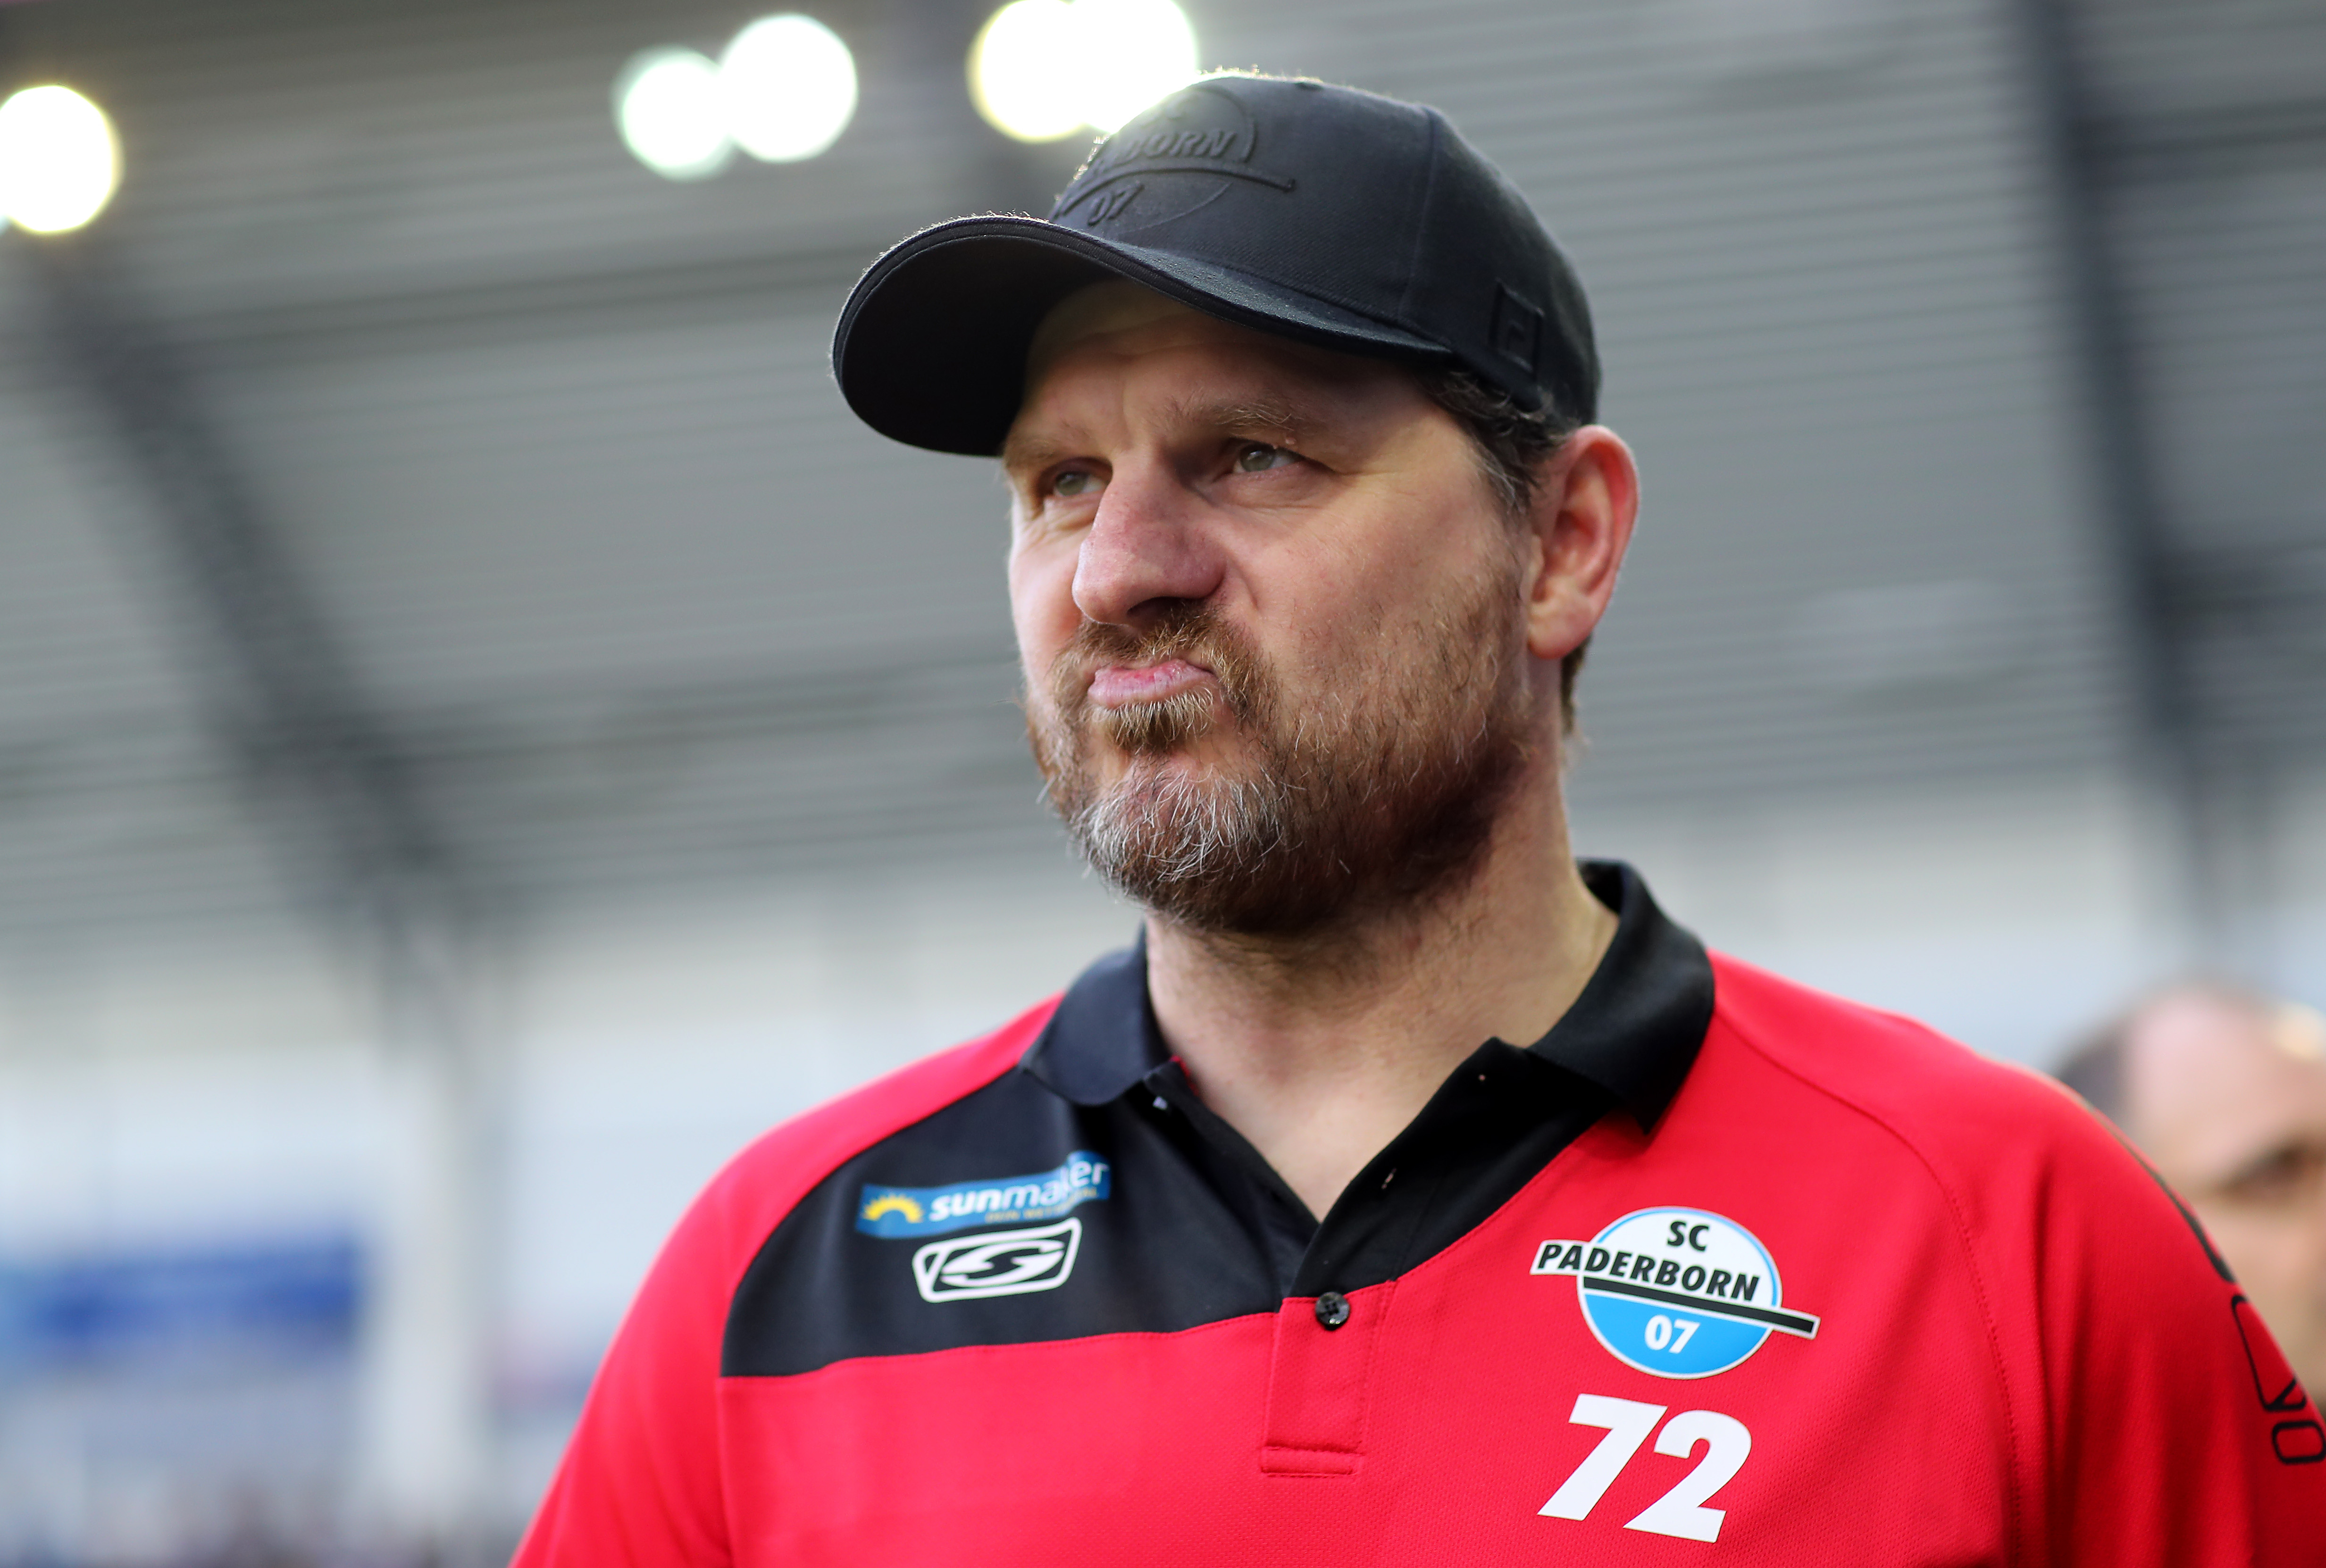 Paderborn boss Steffen Bamugart will be hoping to mastermind an upset win this weekend (Photo by Christof Koepsel/Bongarts/Getty Images)